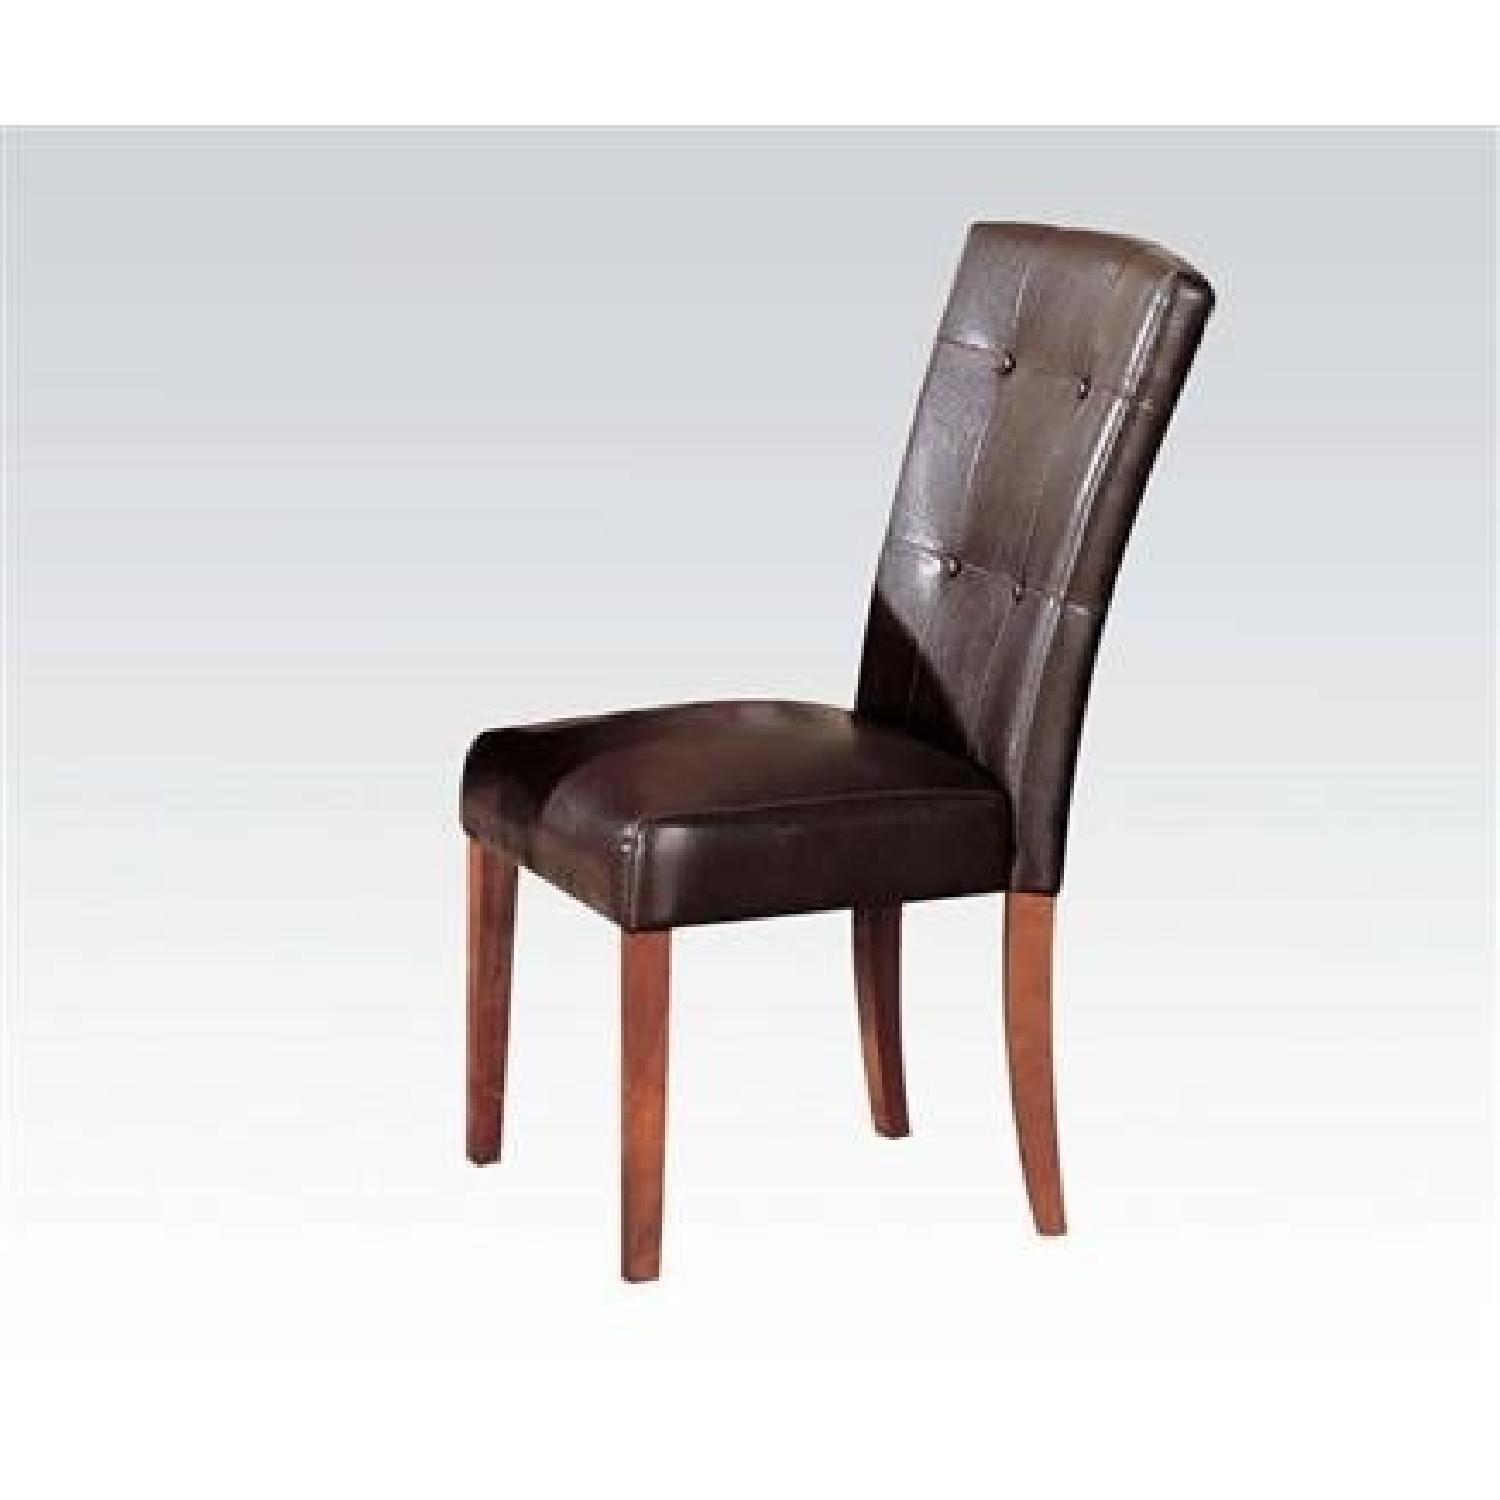 Parson Dining Chairs Upholstered in Brown - image-1